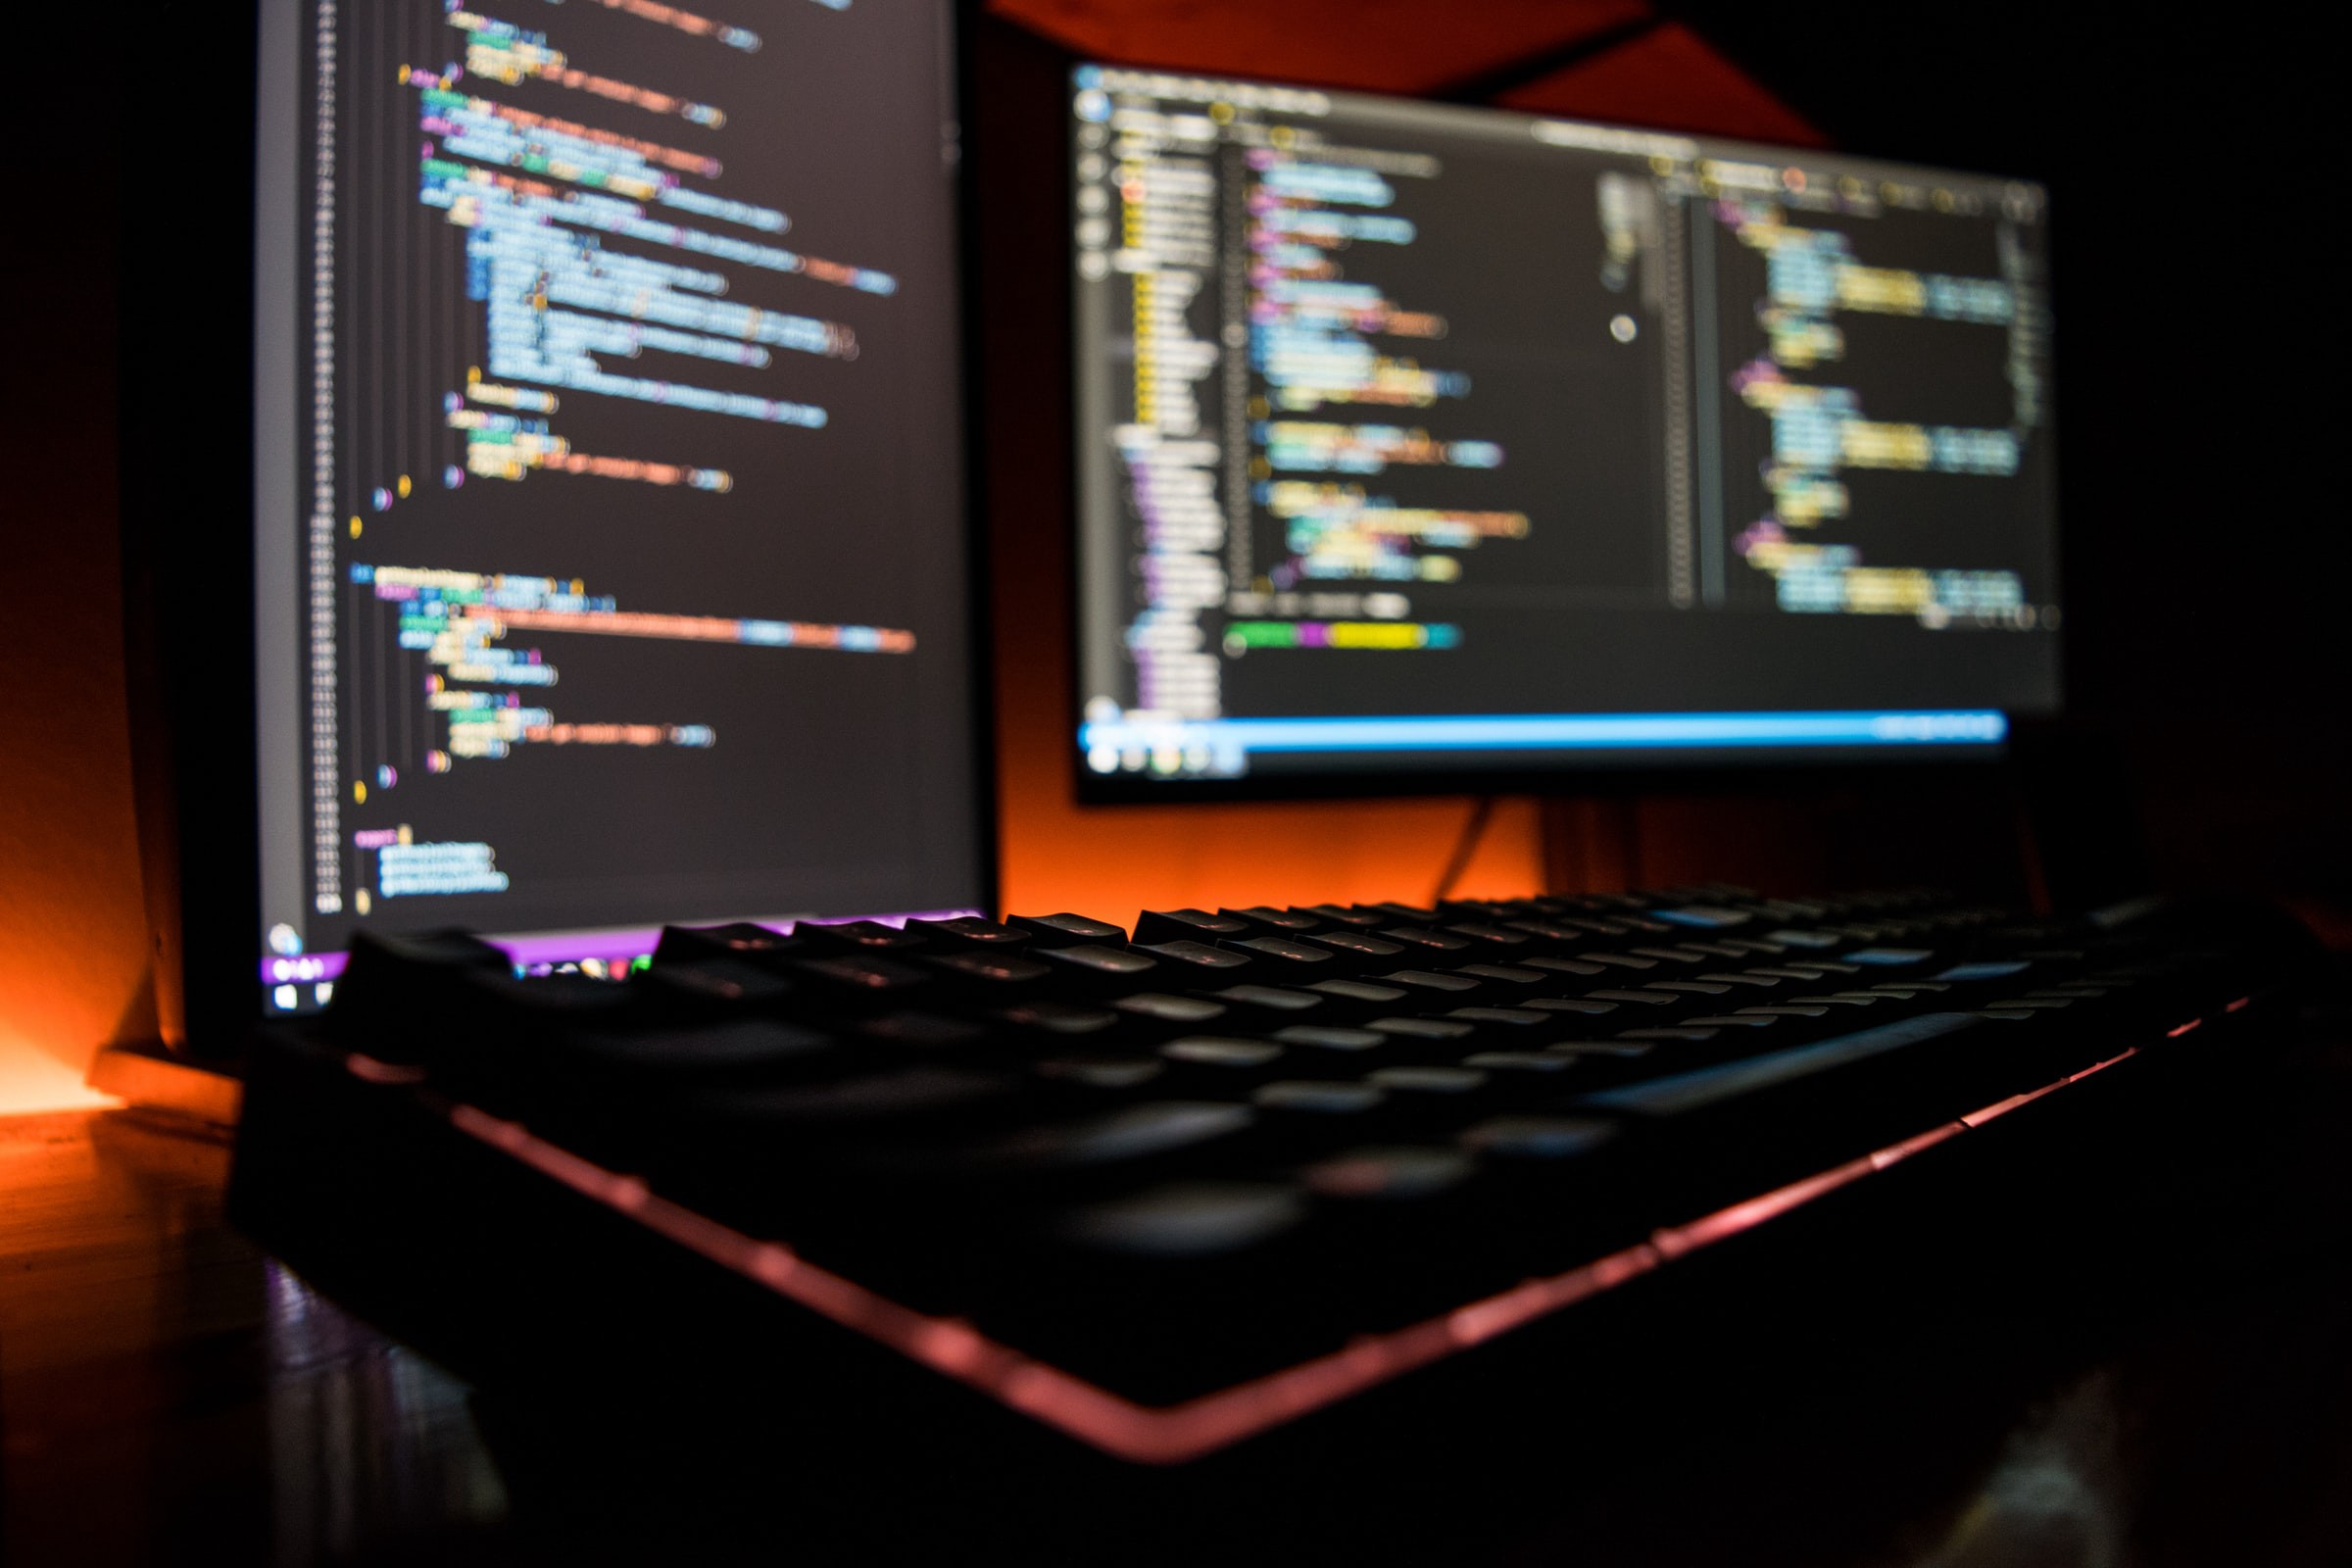 Two monitors displaying computer code, with a keyboard in front. The monitors are back-lit by an orange glow.